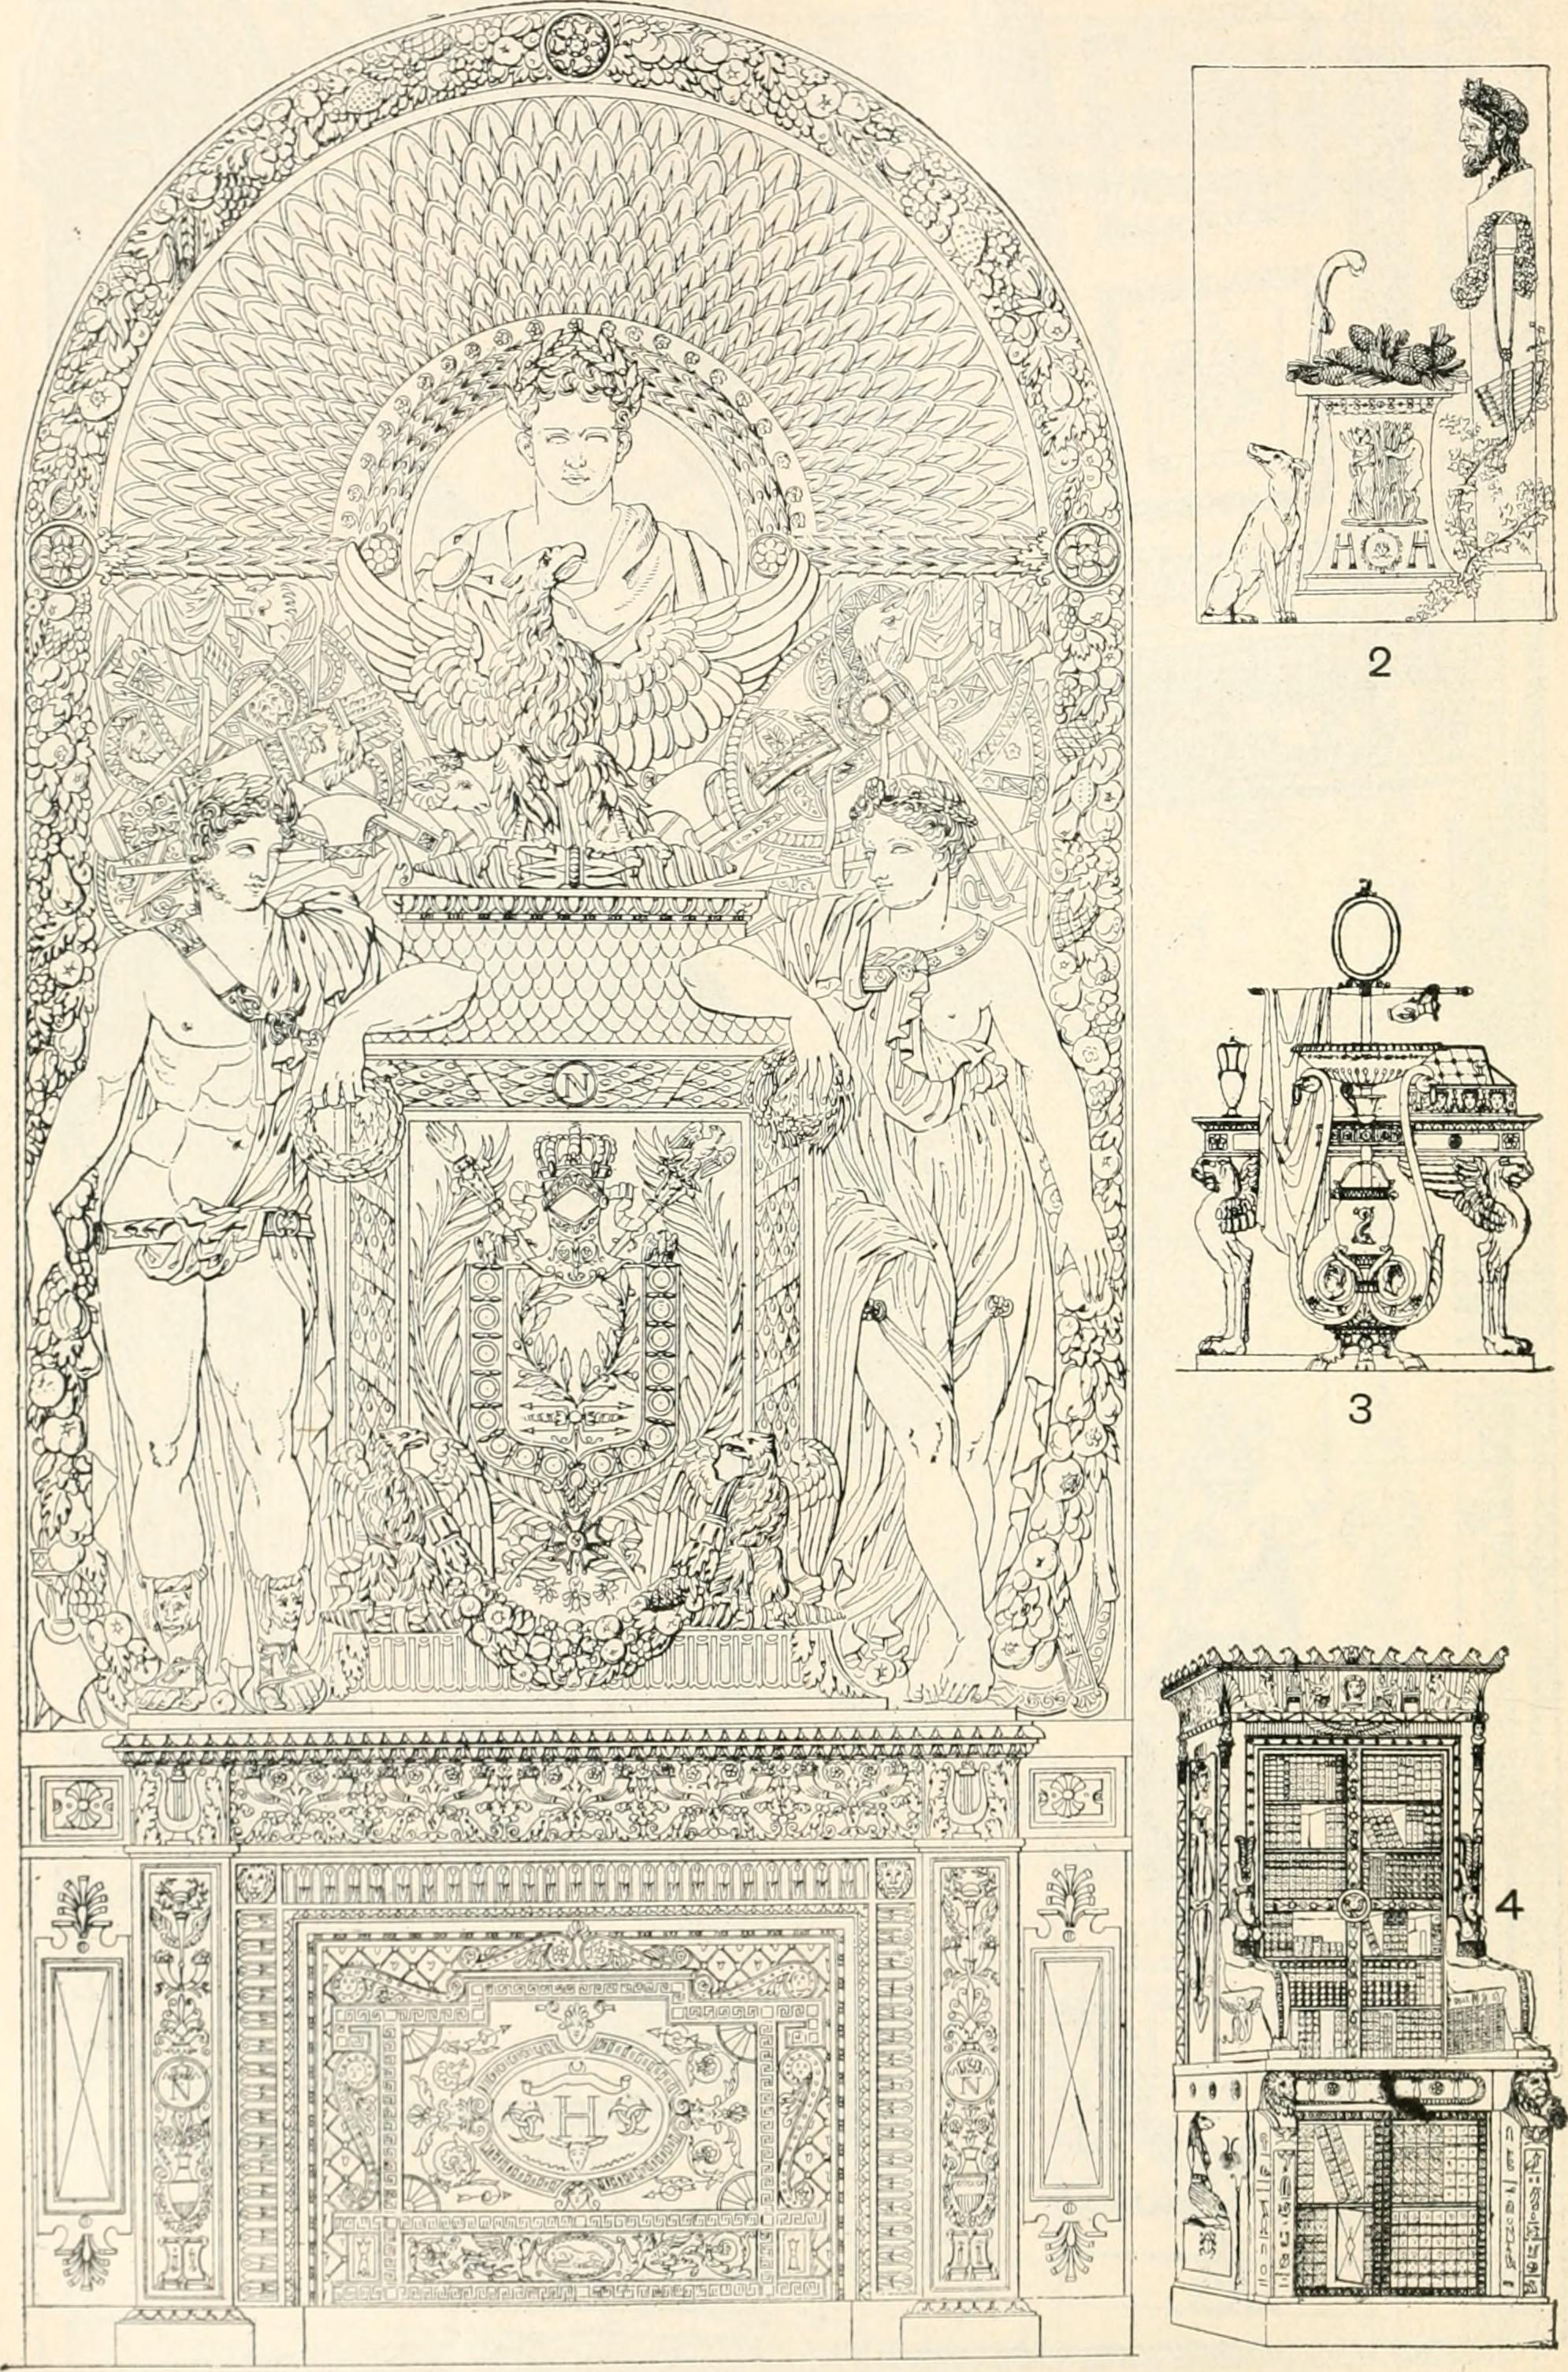 Art Et Decoration Sarrebourg File Styles Of Ornament Exhibited In Designs And Arranged In